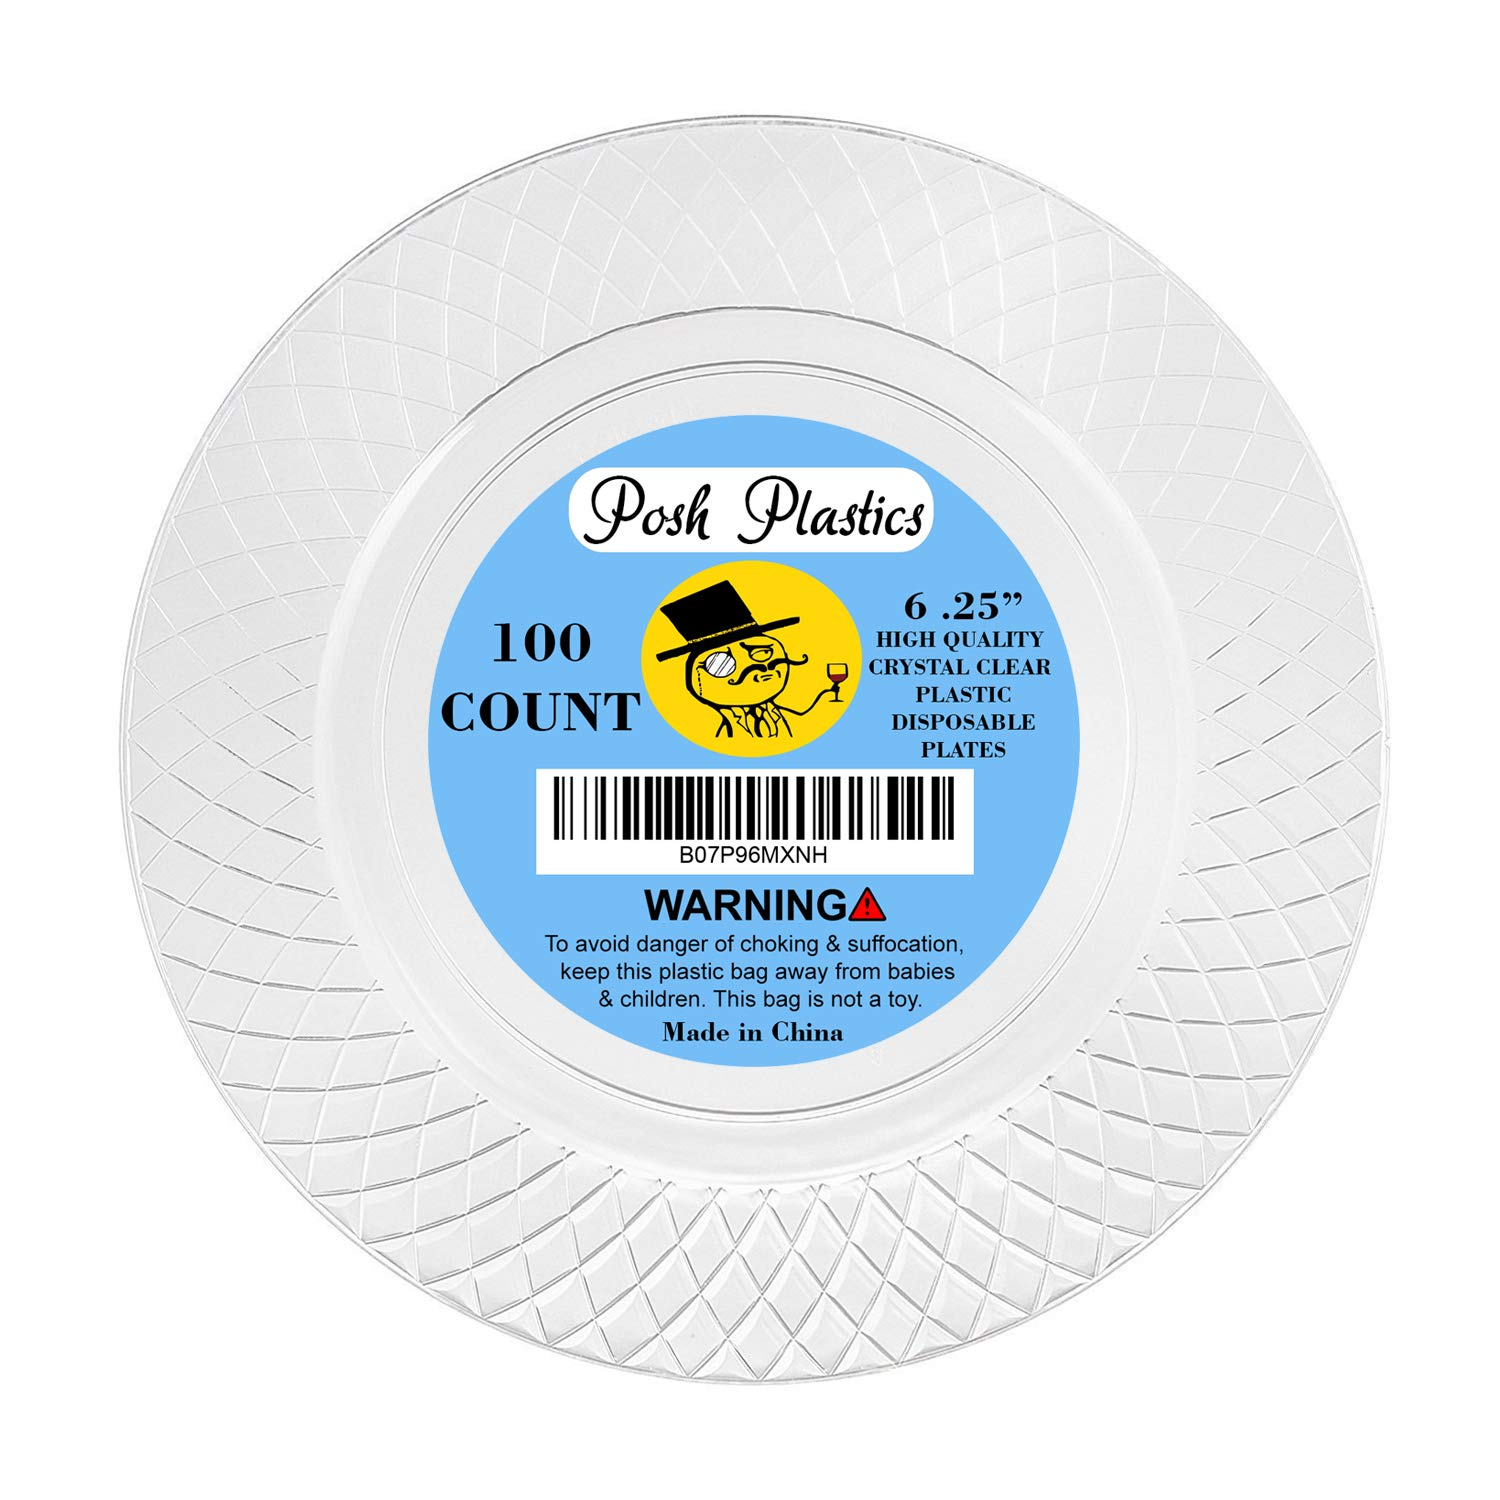 100 CRYSTAL CLEAR PLASTIC PLATES | 6 .25 Inch Disposable Plates | Elegant Wedding Plates | Strong Dessert Plates | Fancy Round Party Plates | Heavy Duty Appetizer Plates | Small Cake By Posh Plastics by Posh Plastics